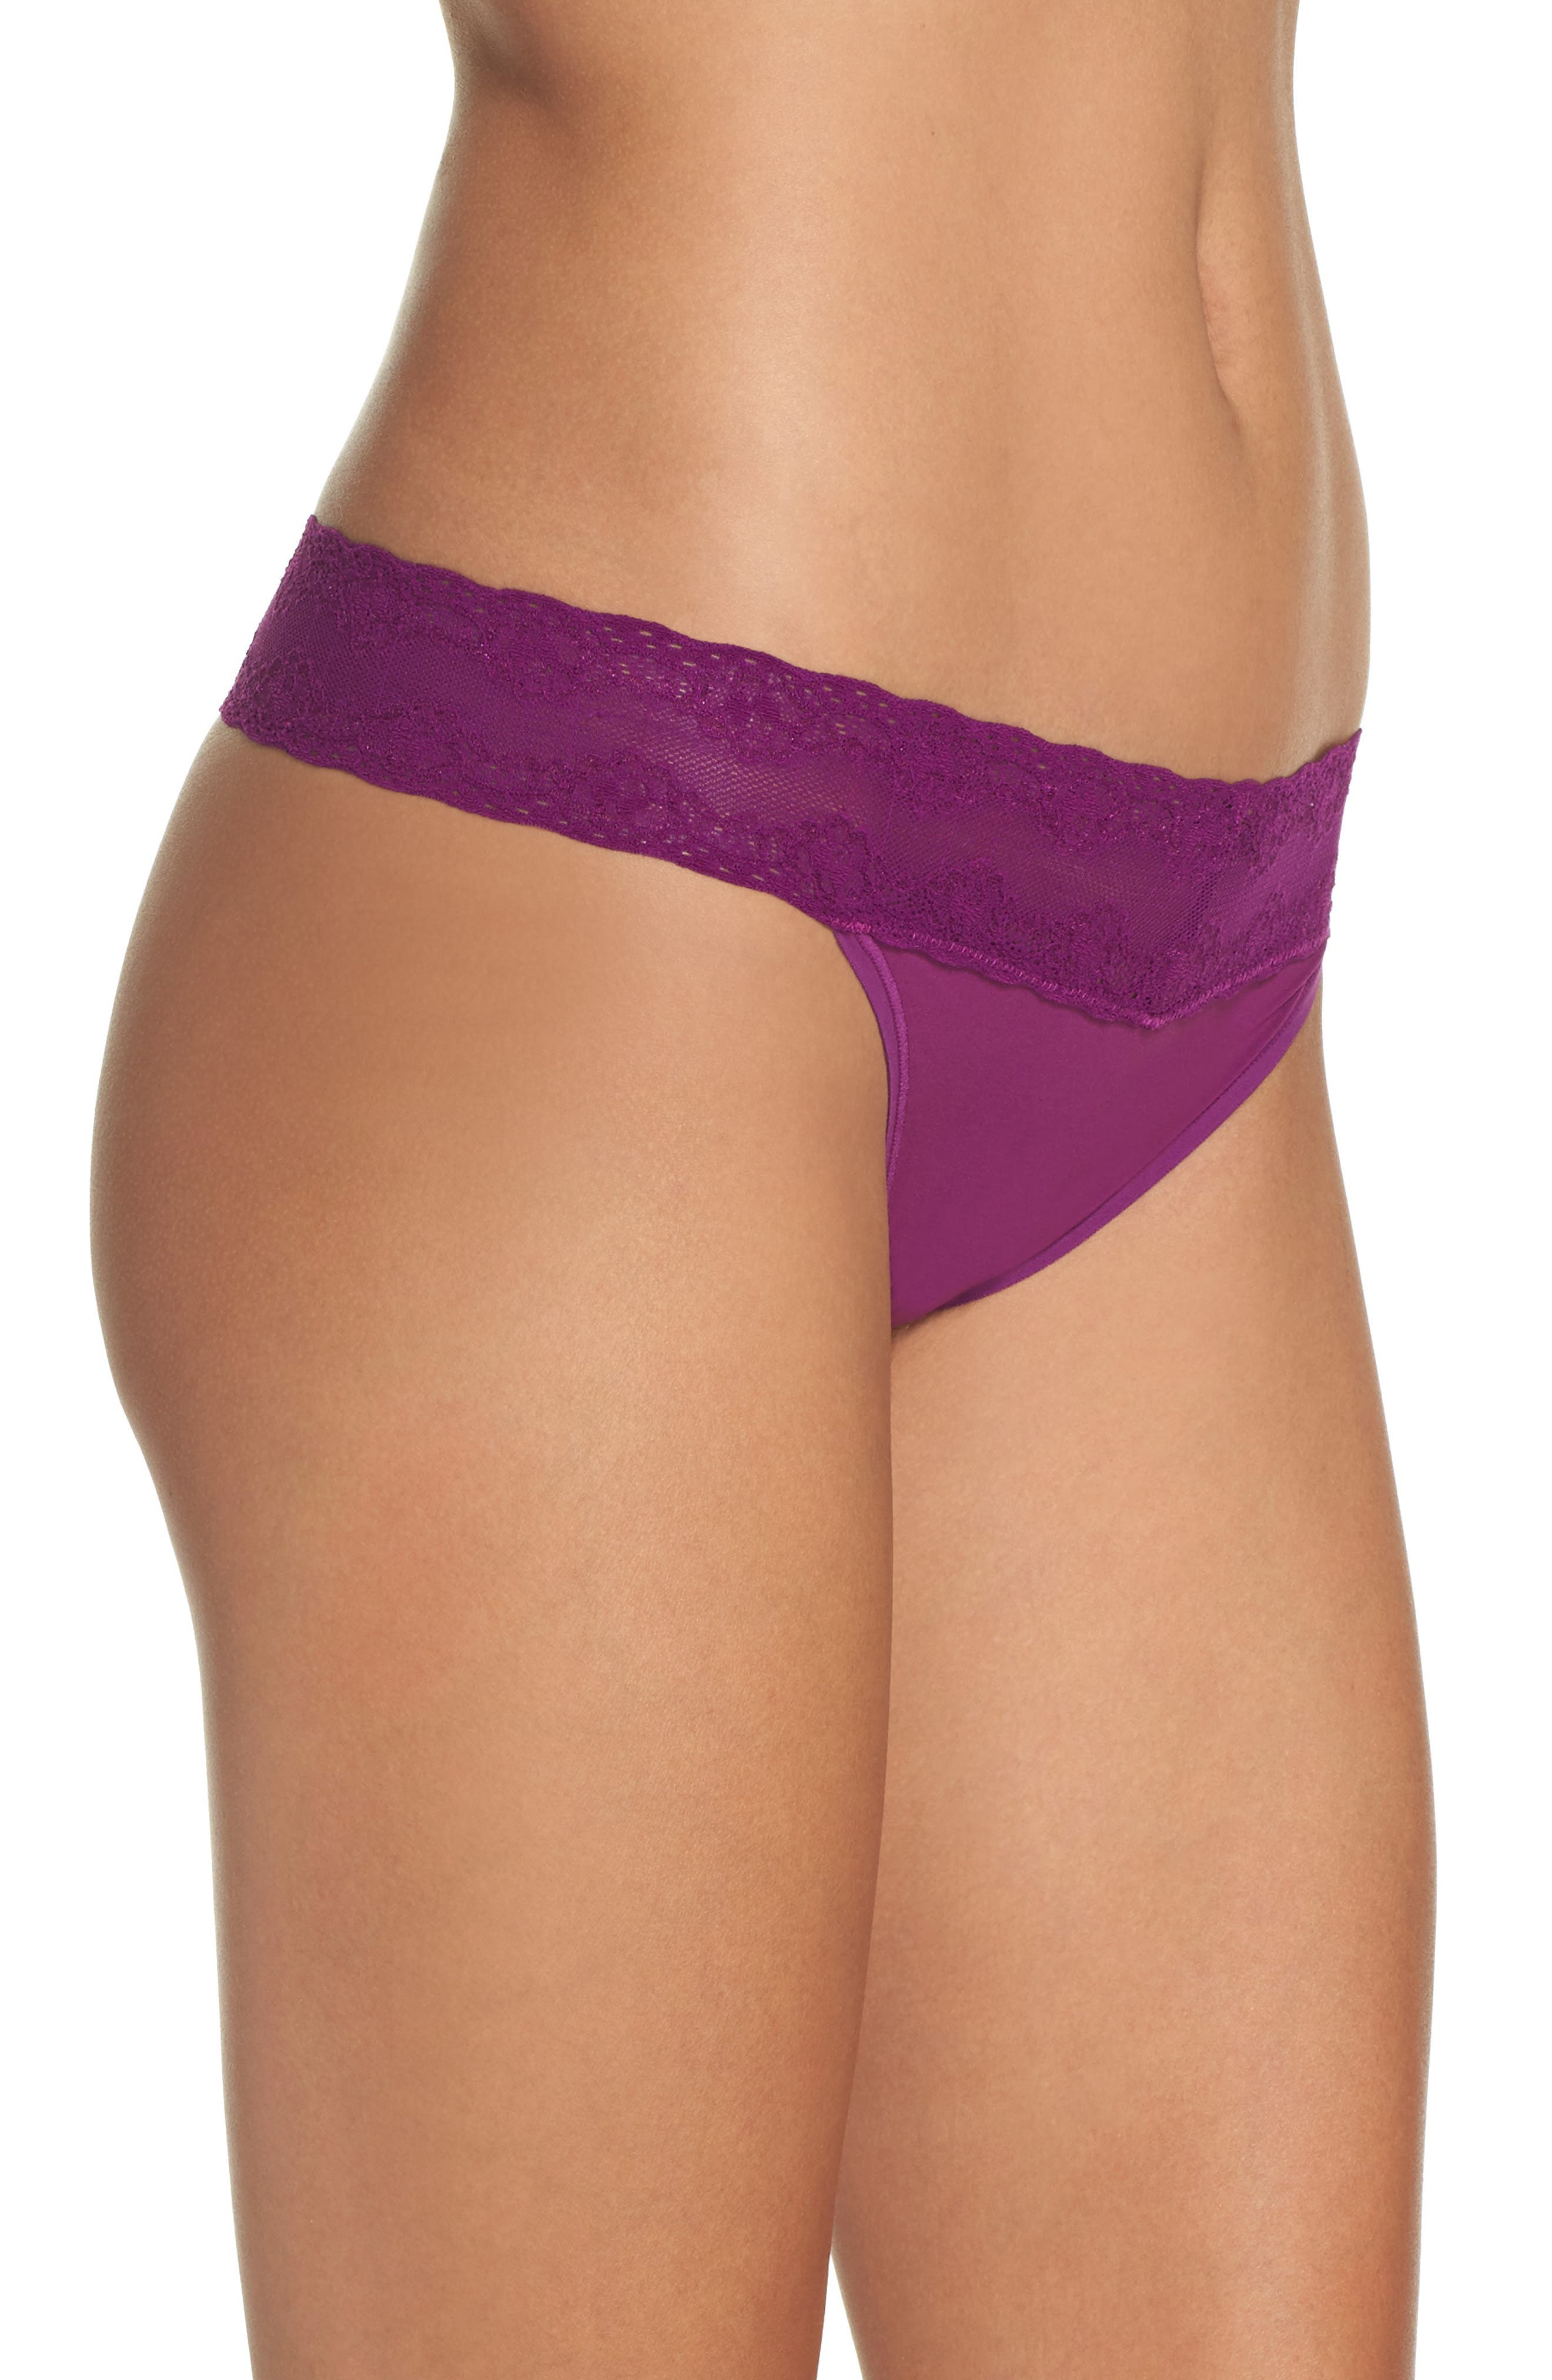 Bliss Perfection Thong,                             Alternate thumbnail 274, color,